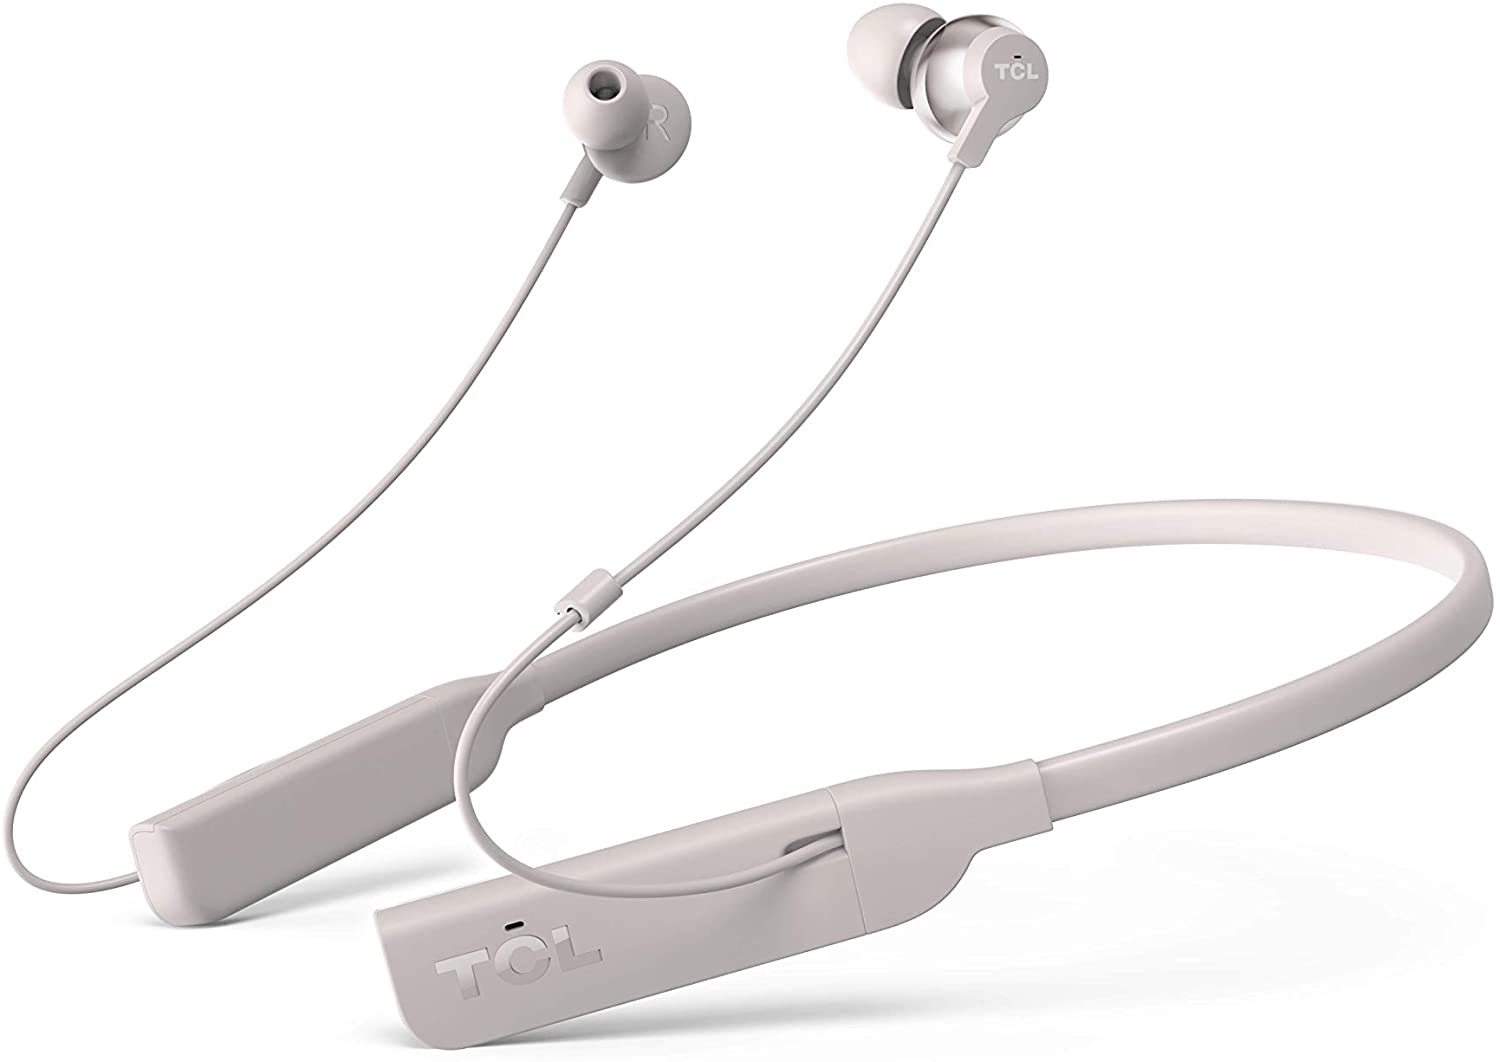 Tcl Elit200nc Bluetooth Neckband Headset Price, Features Review